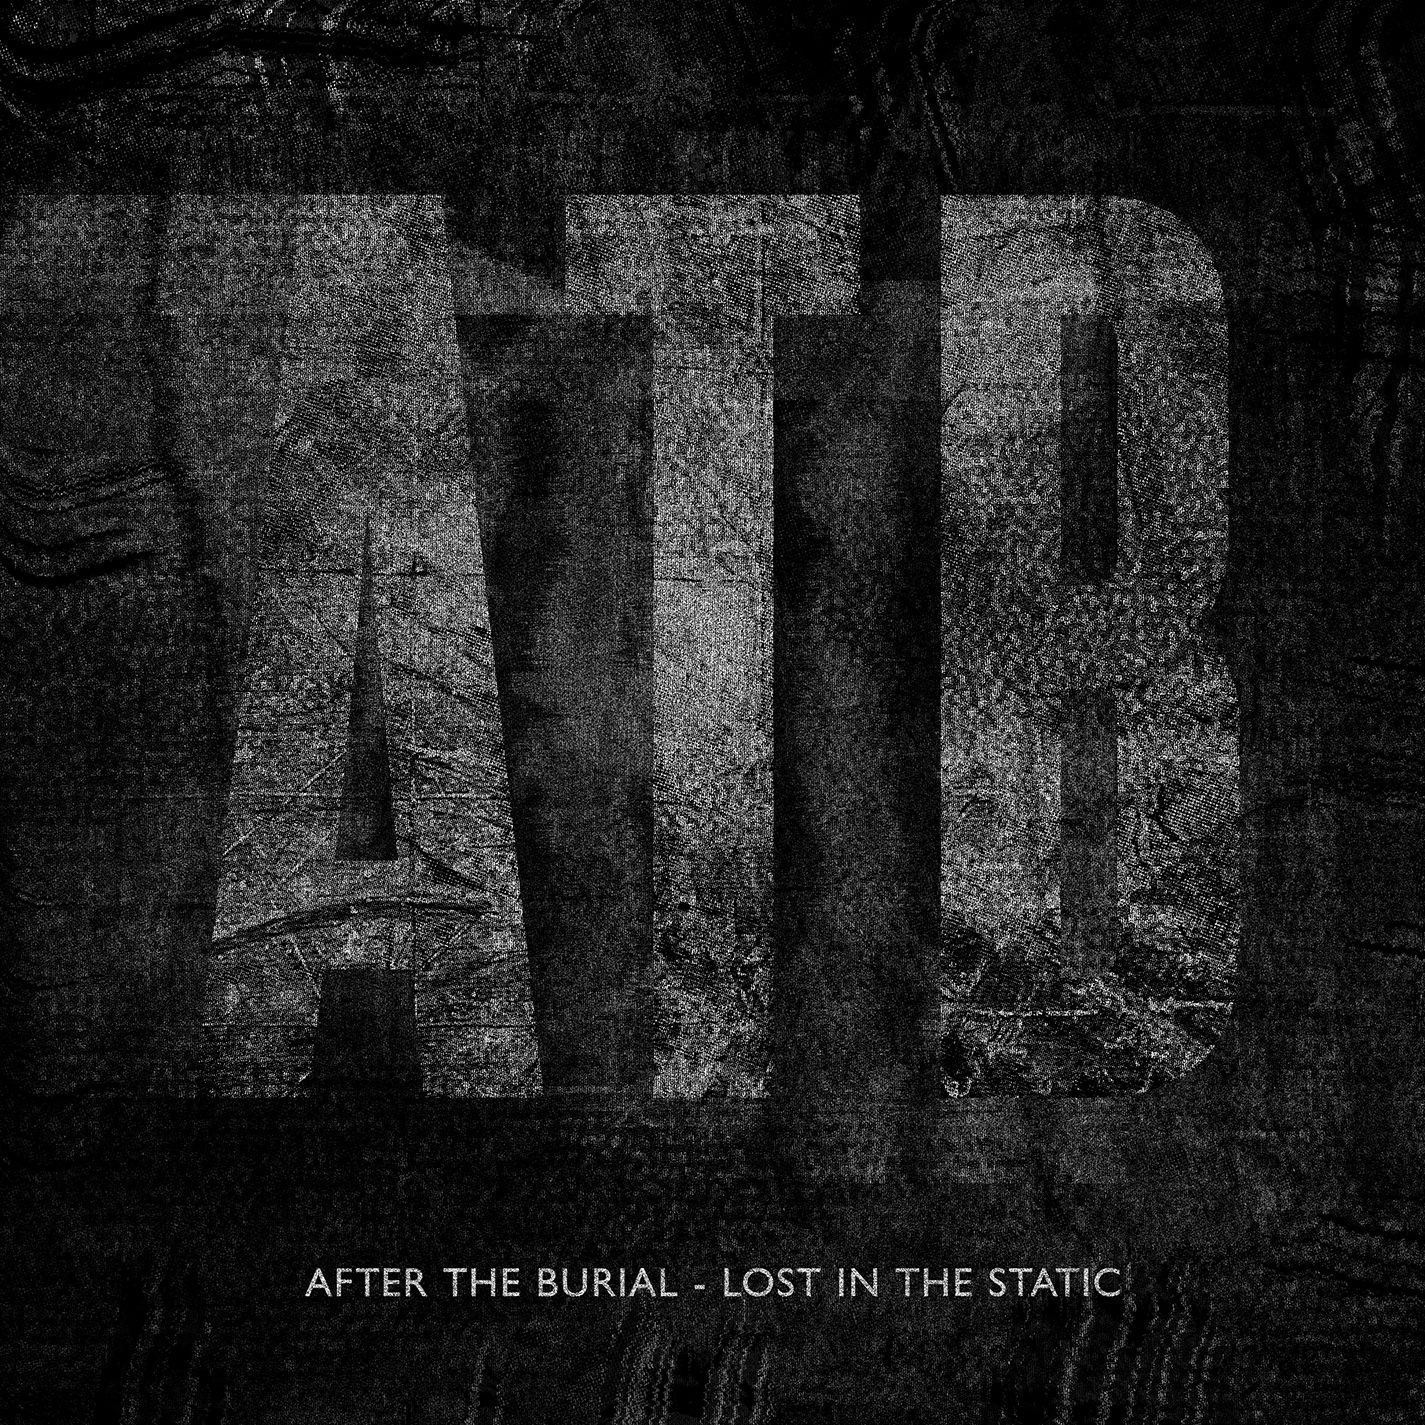 After The Burial - Lost In The Static [single] (2015)